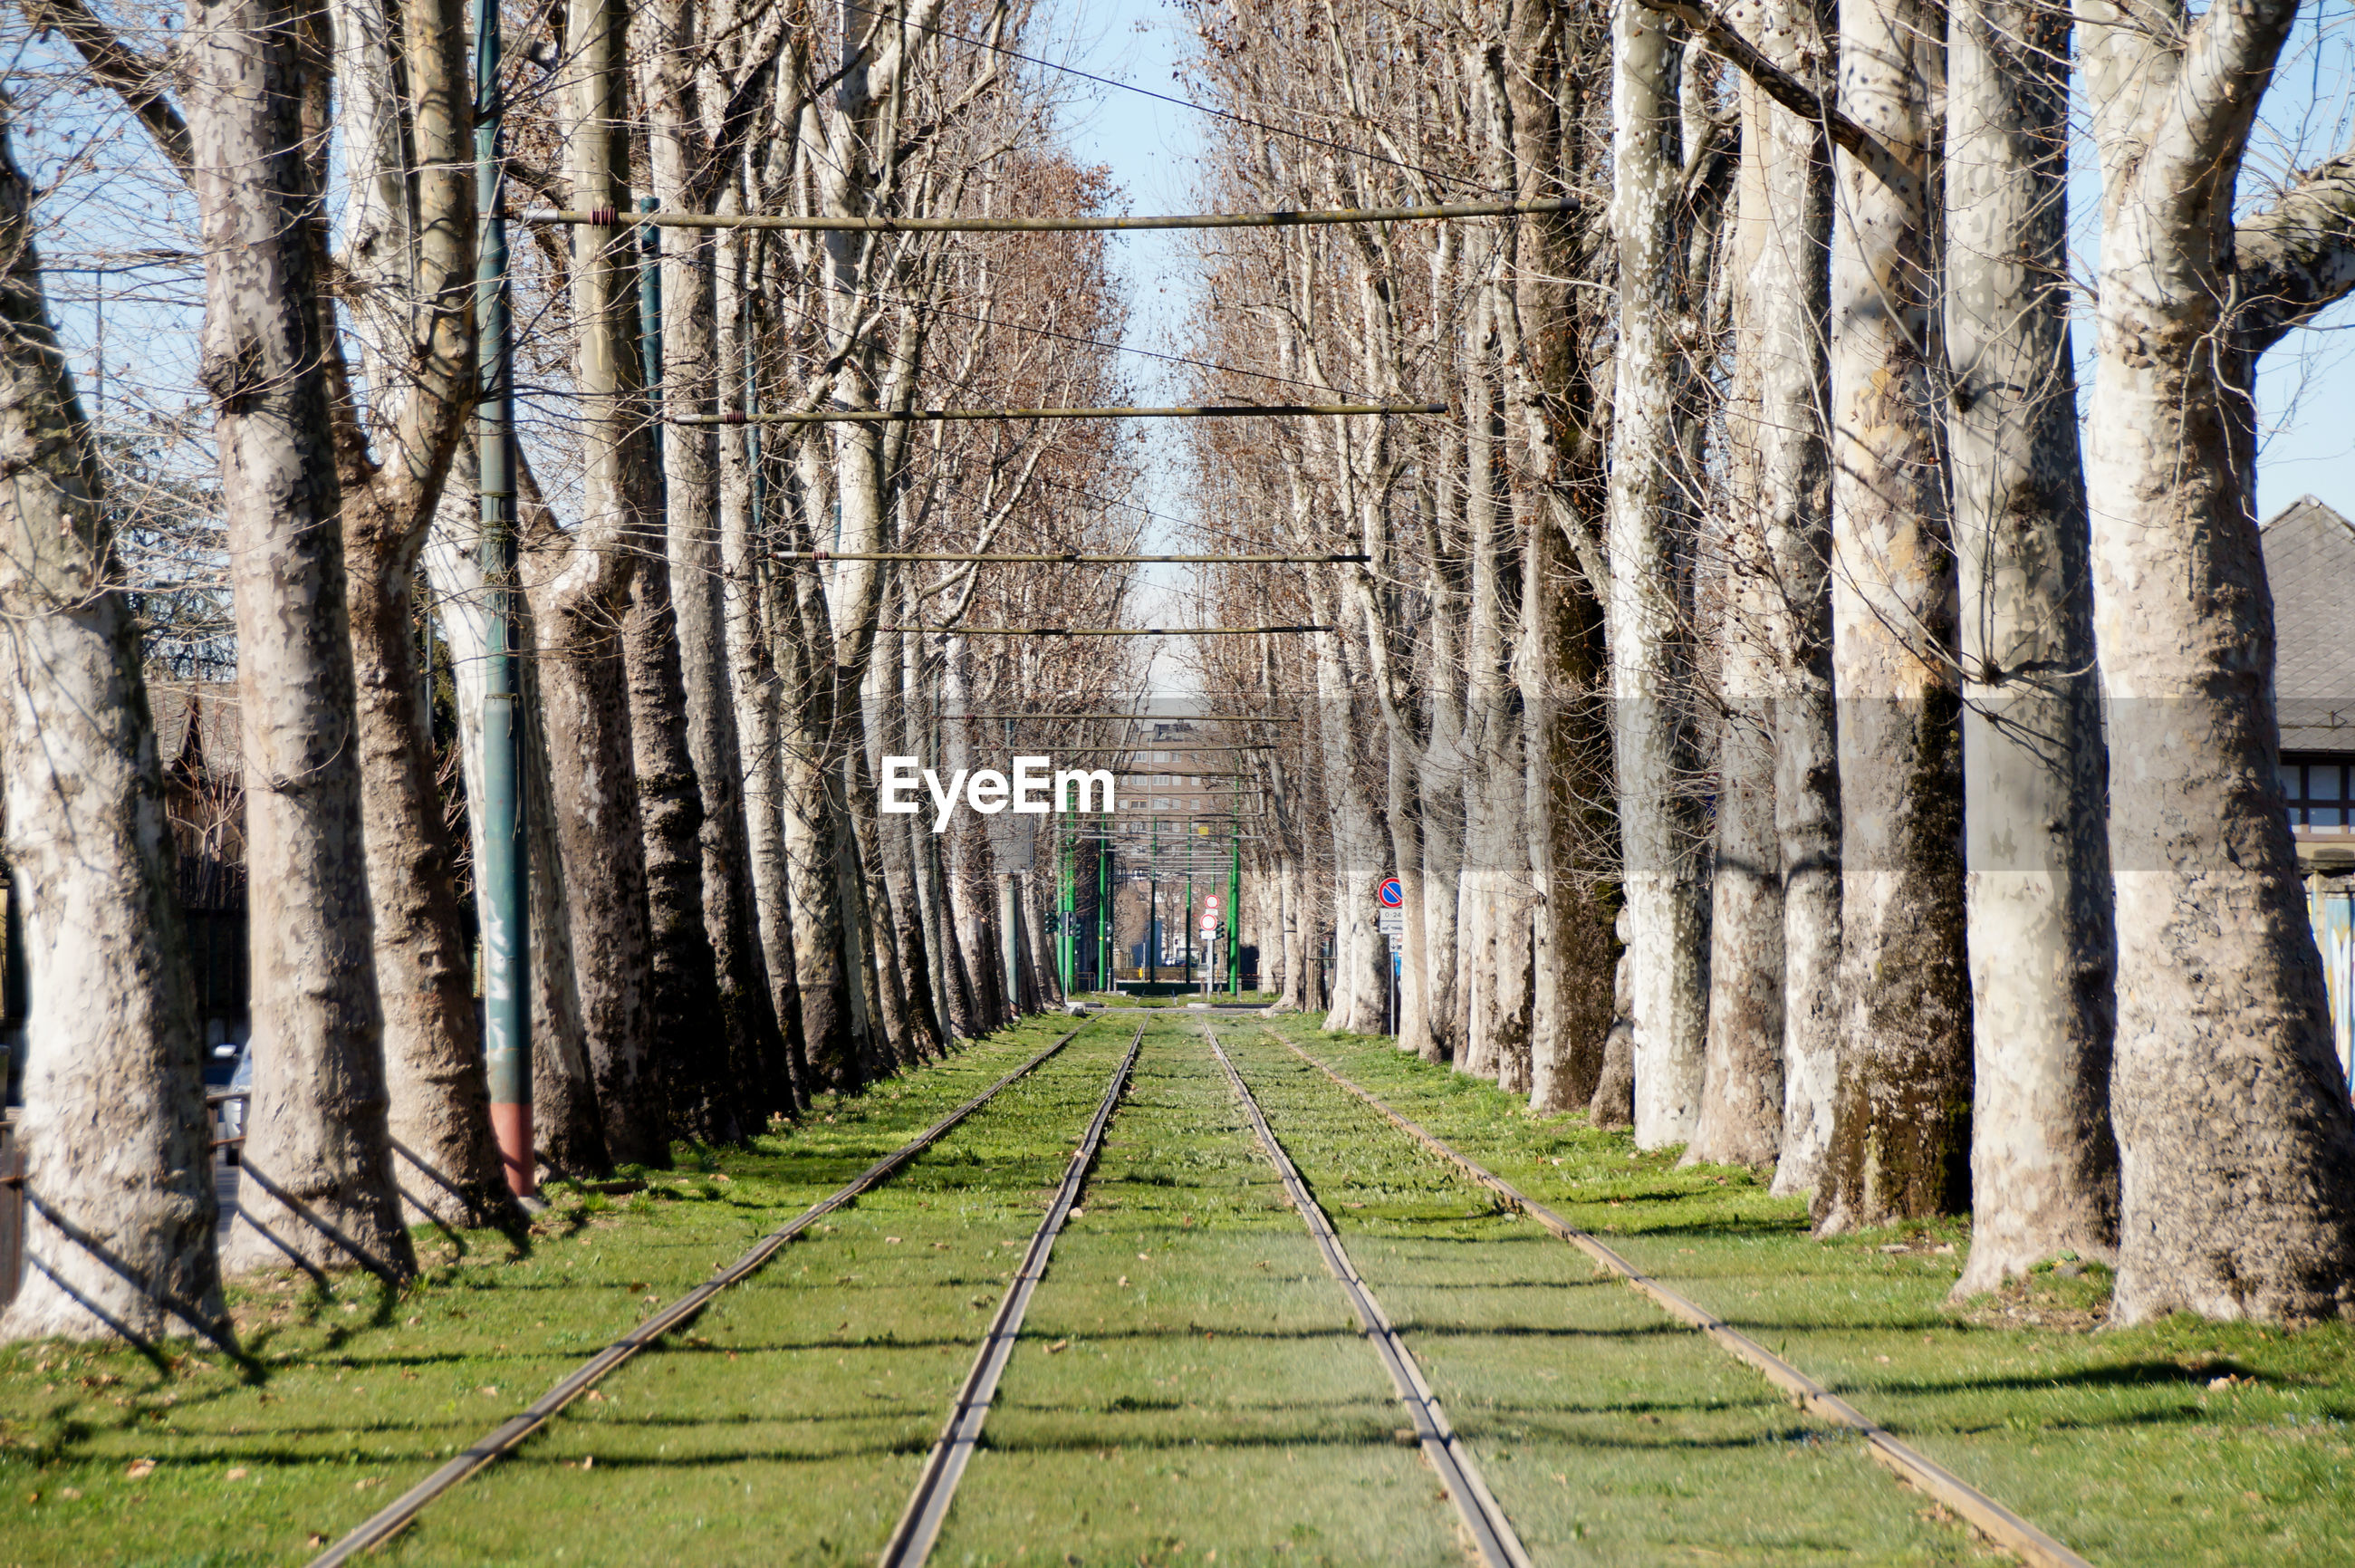 Railroad tracks amidst trees during sunny day